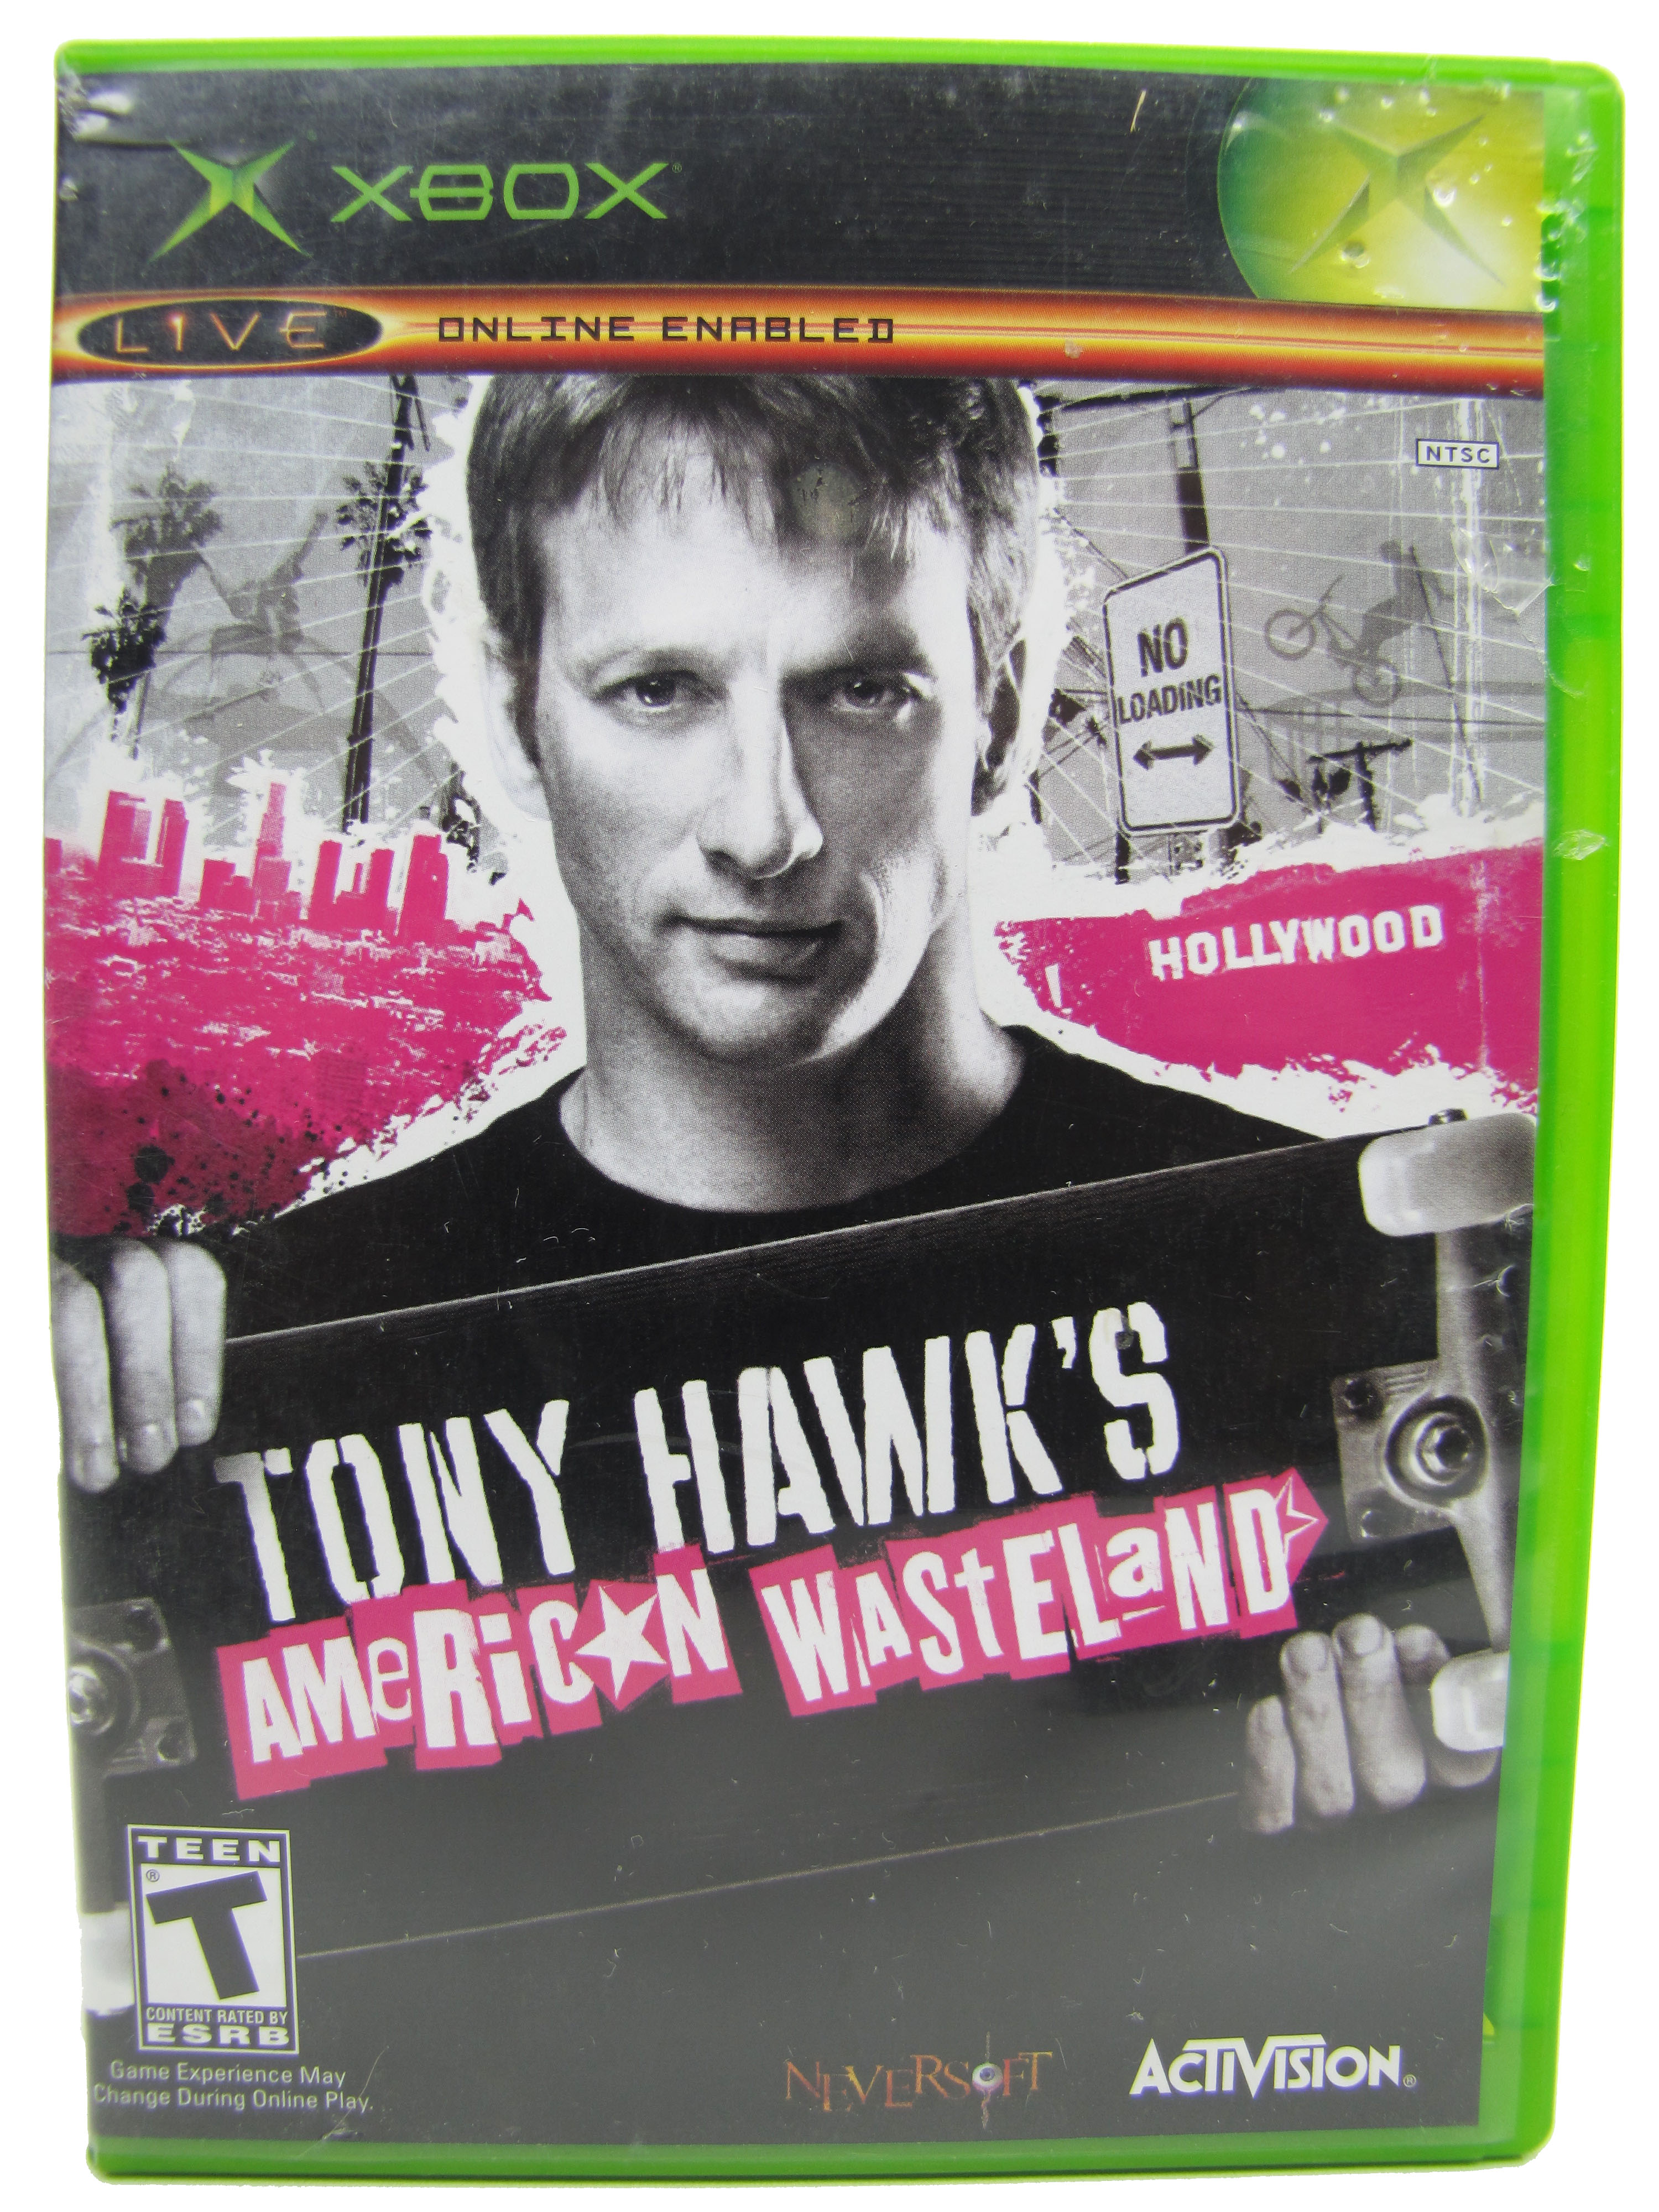 XBOX Tony Hawk American Wasteland